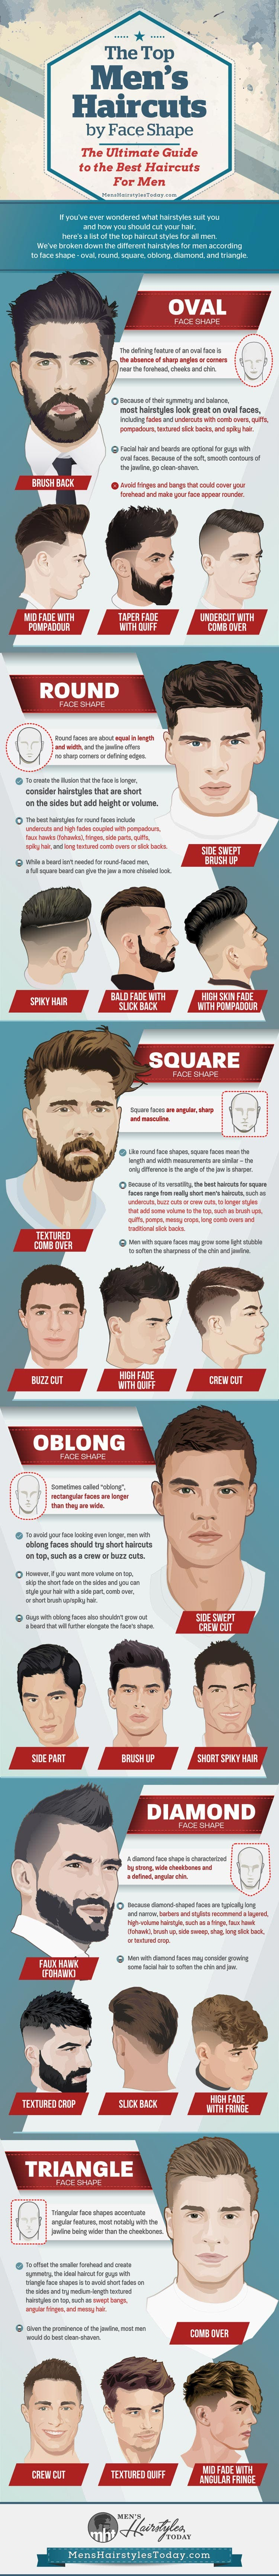 what-haircut-should-i-get-best-hairstyles-for-men-by-face-shape